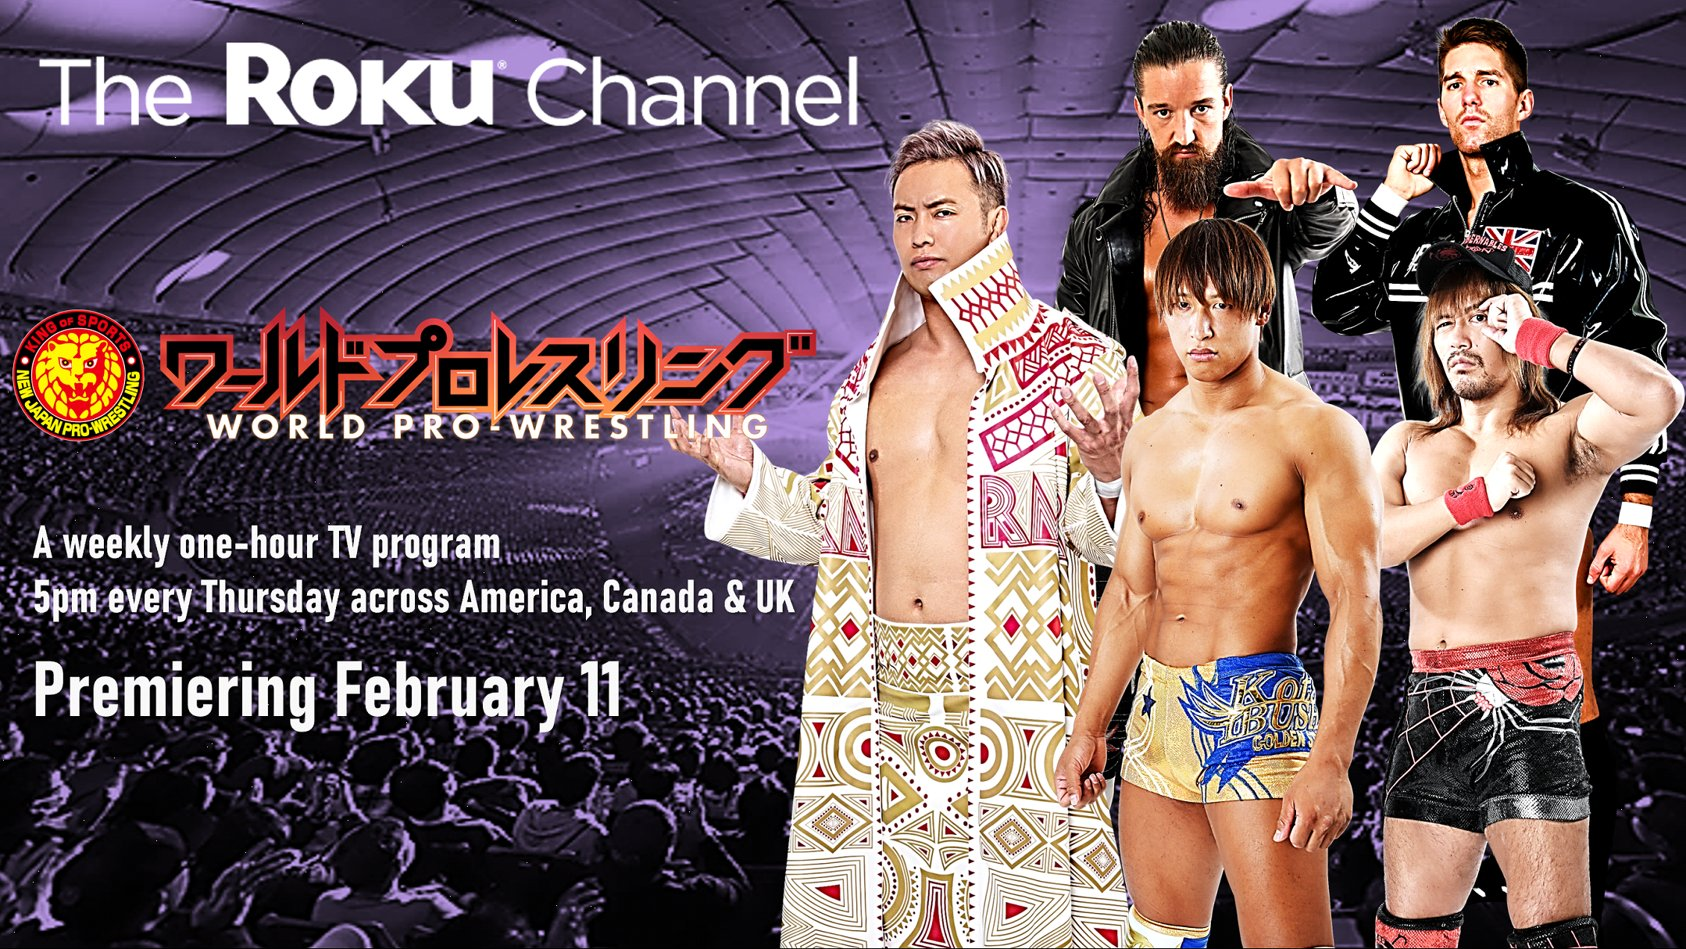 NJPW Announces Partnership With The Roku Channel